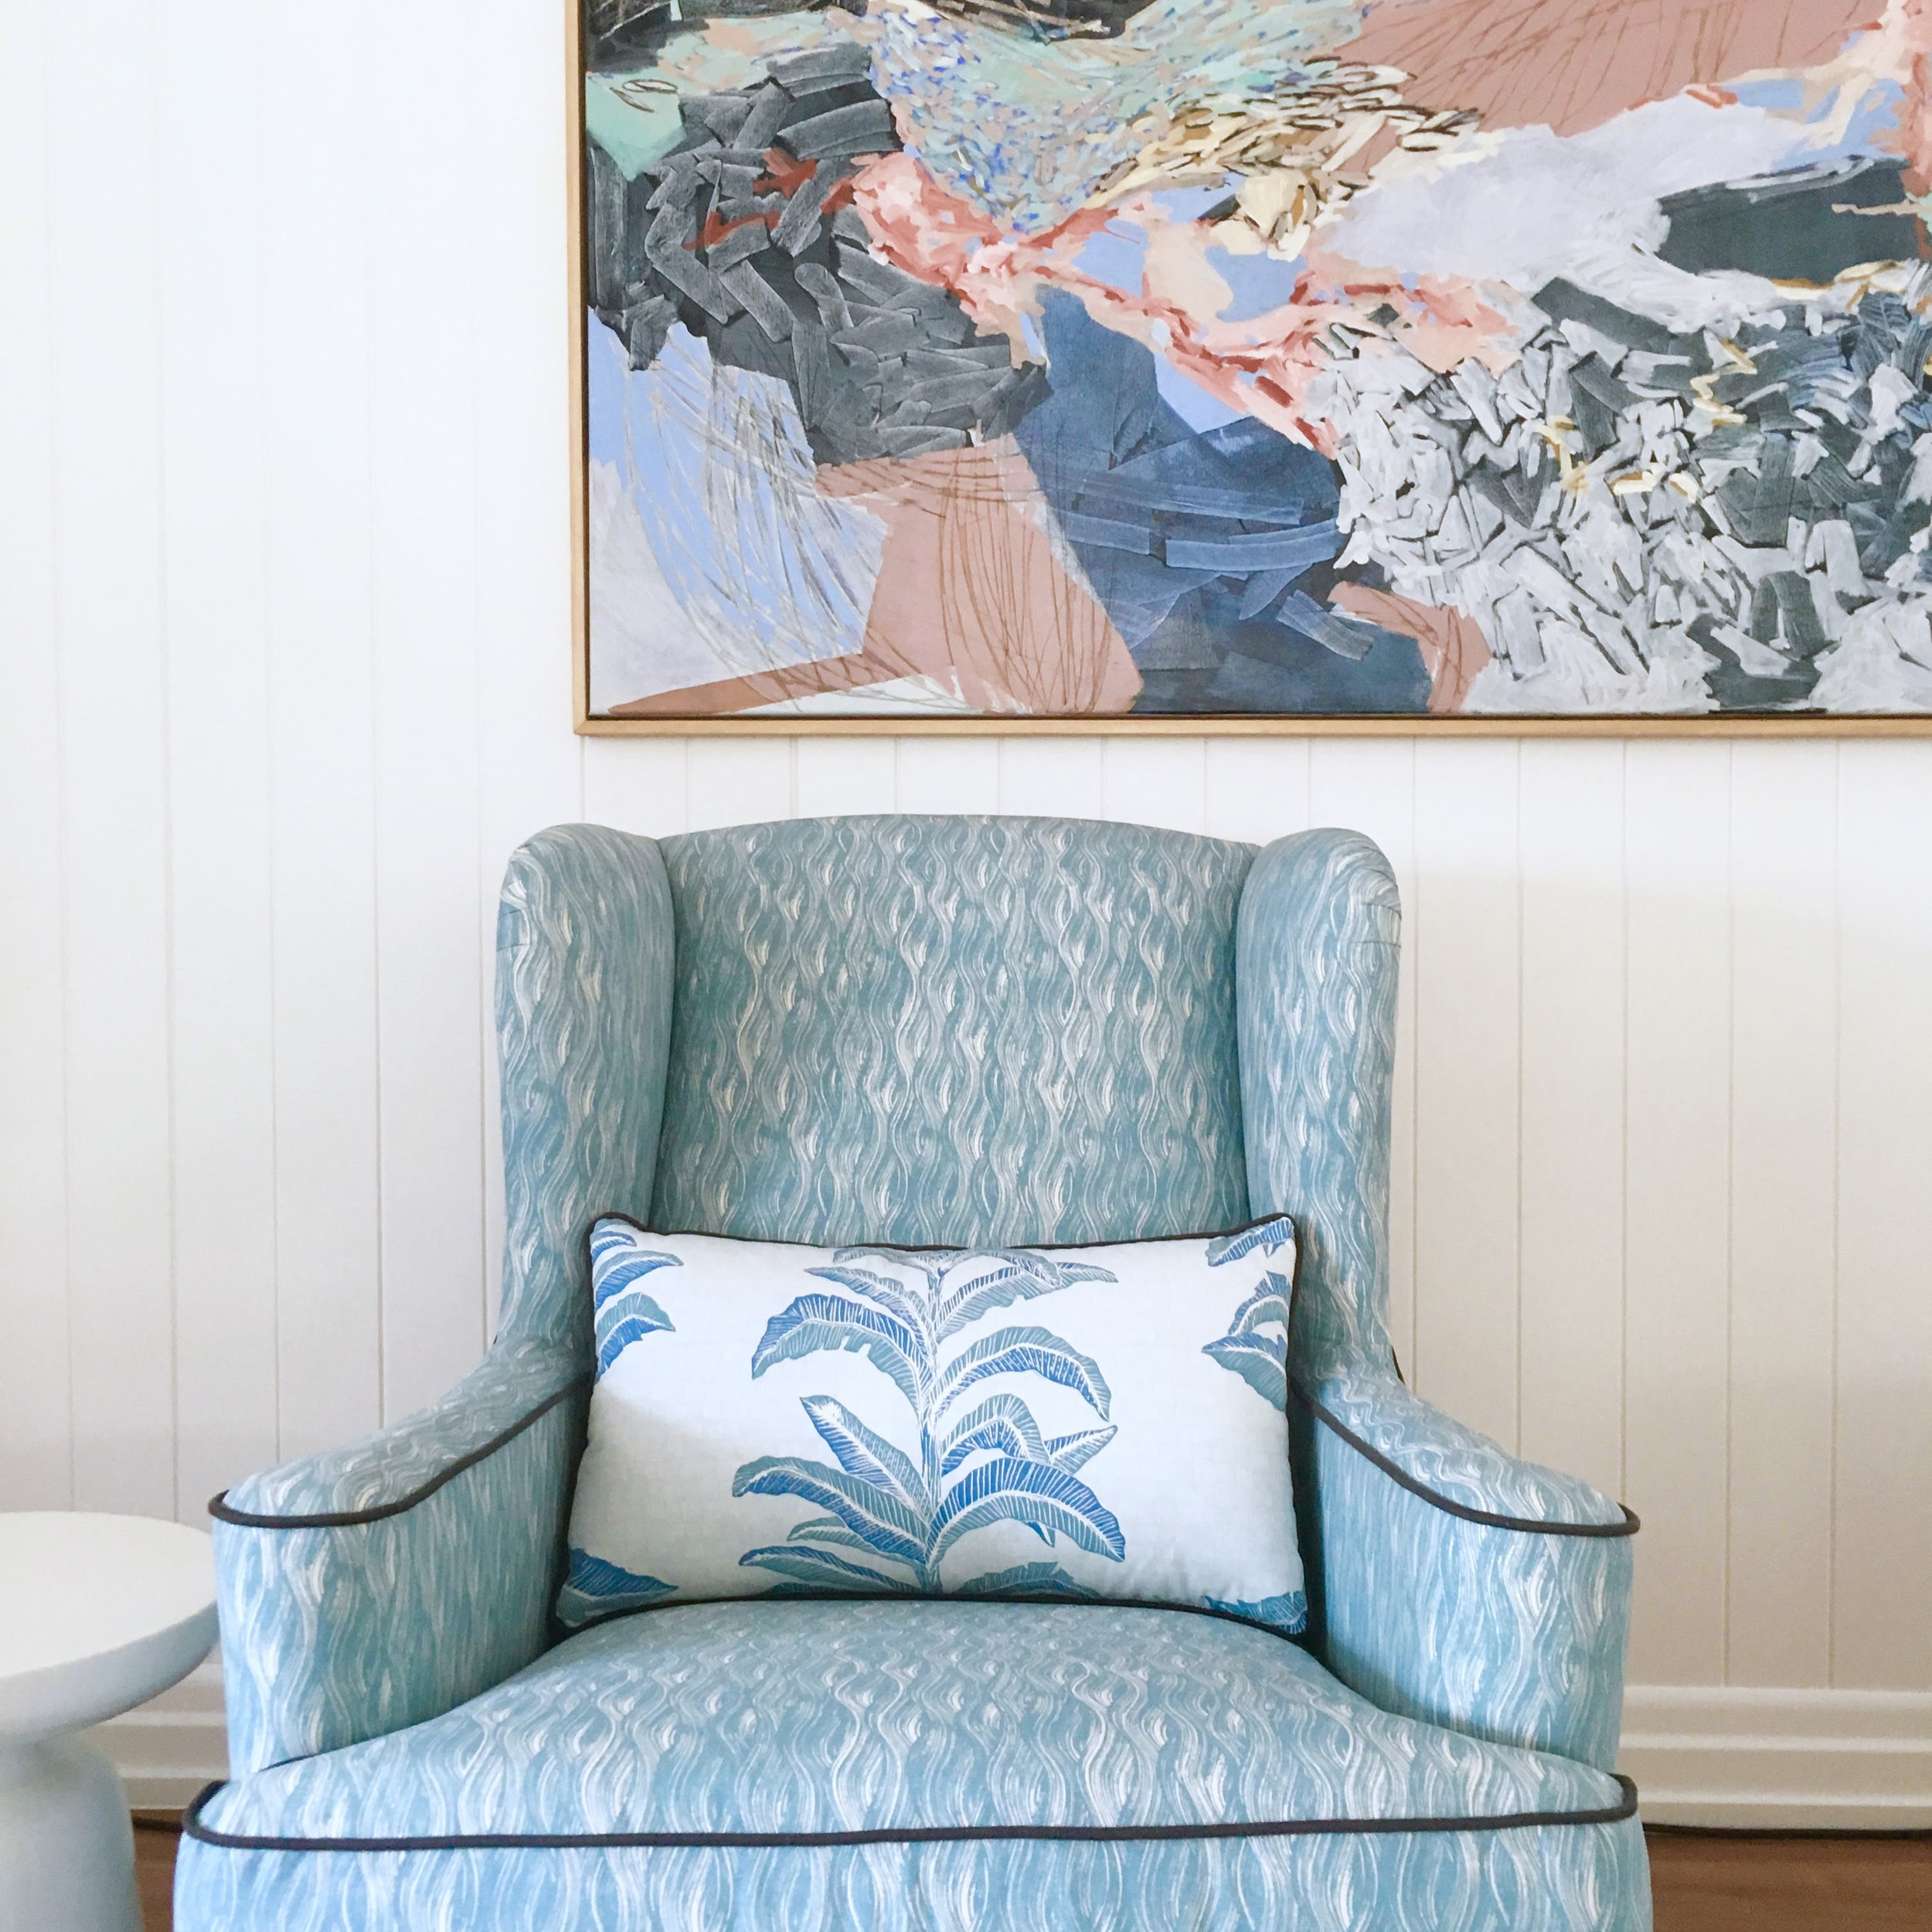 Banana Leaf Pillow in Sapphire, Interiors by Claire Stevens Interior Design, Featured in House & Garden UK